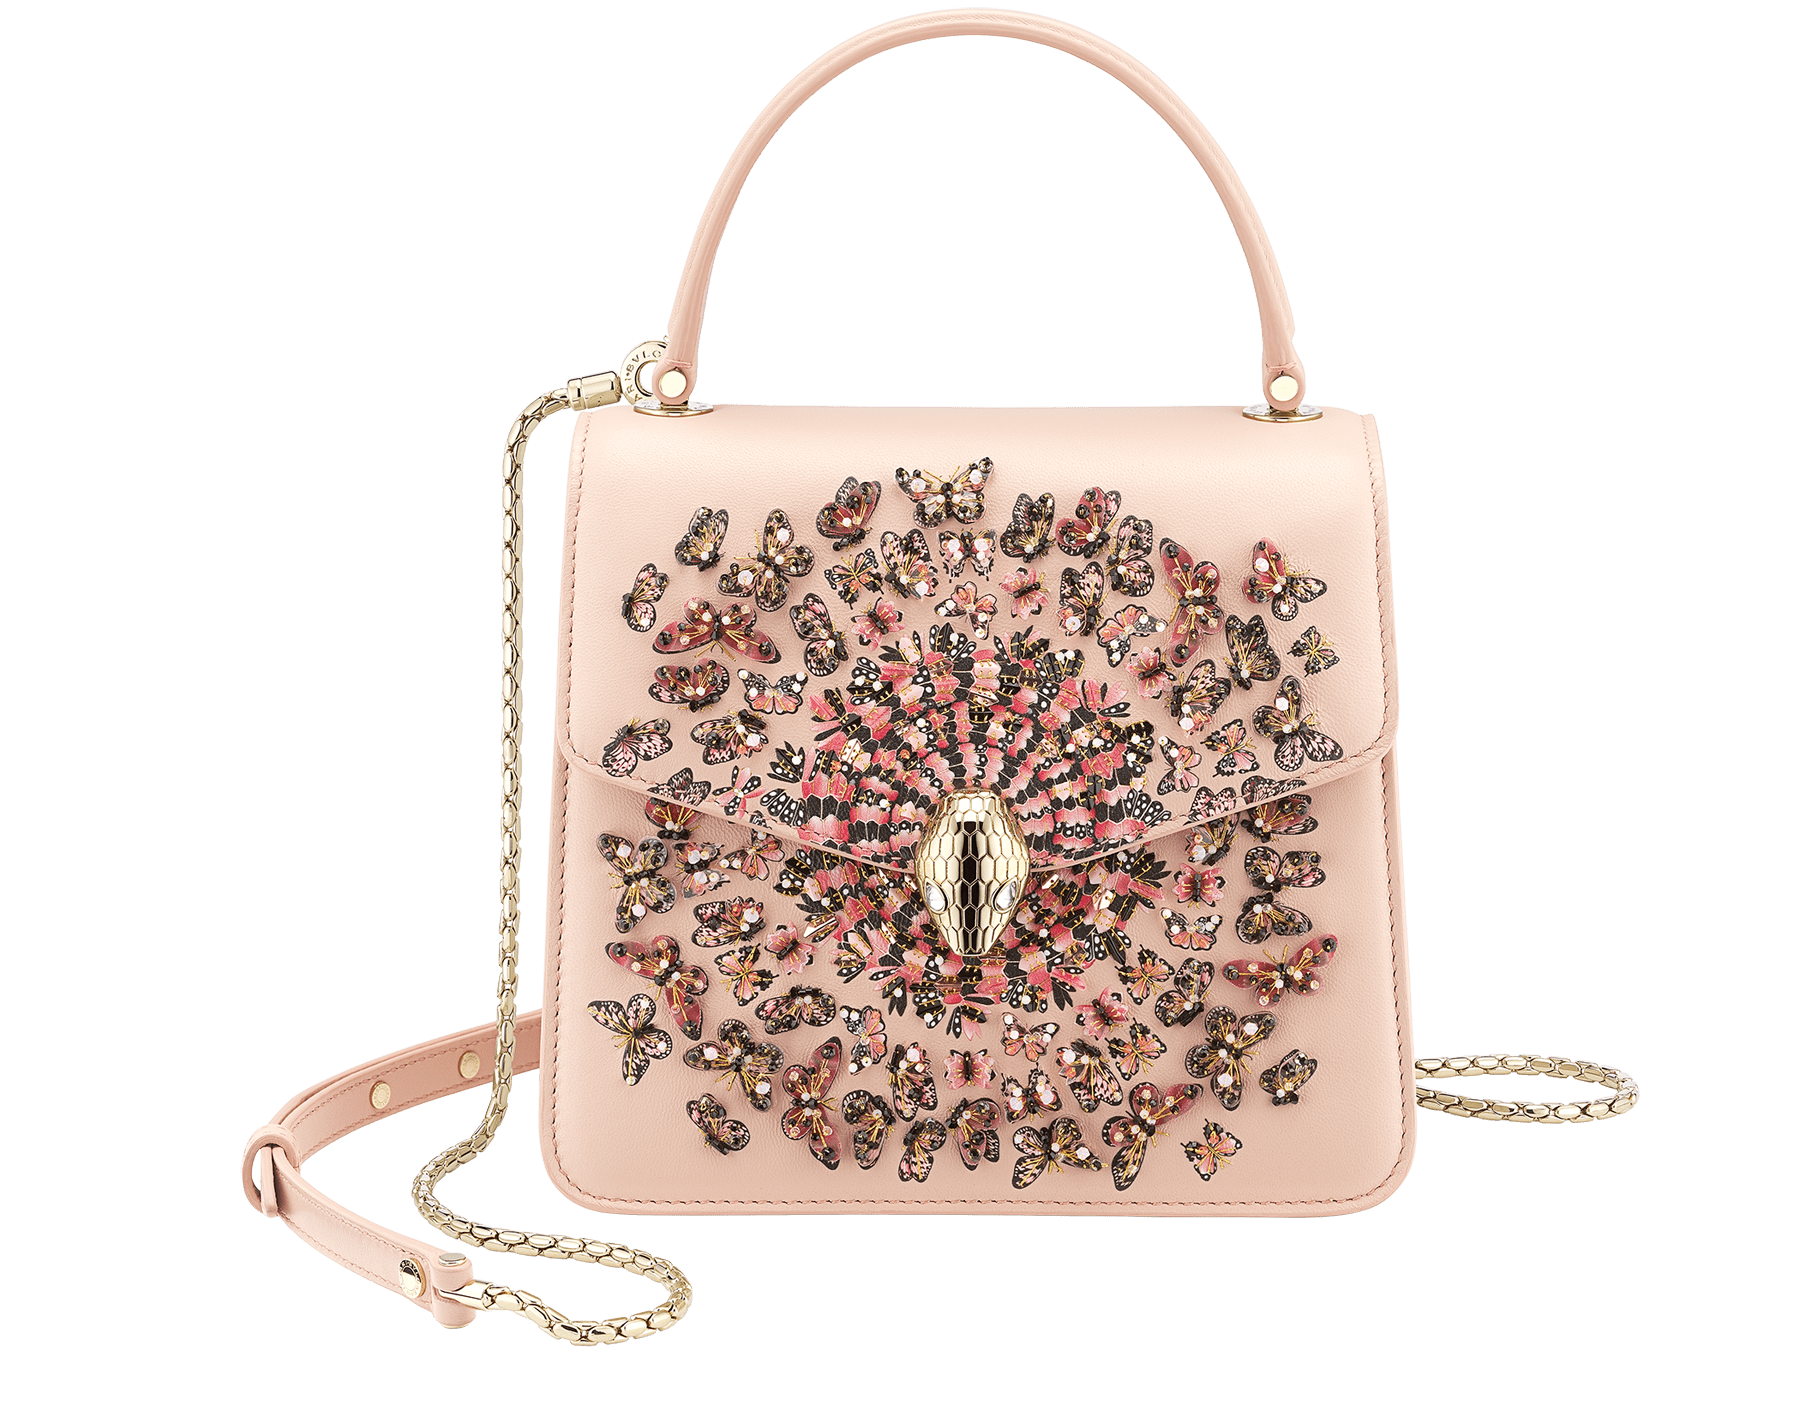 """Mary Katrantzou x Bvlgari"" top handle bag in black nappa leather, with black nappa leather inner lining. New Serpenti head closure in gold-plated brass, finished with seductive crystal eyes. Special Edition. MK-Bejewelled image 1"